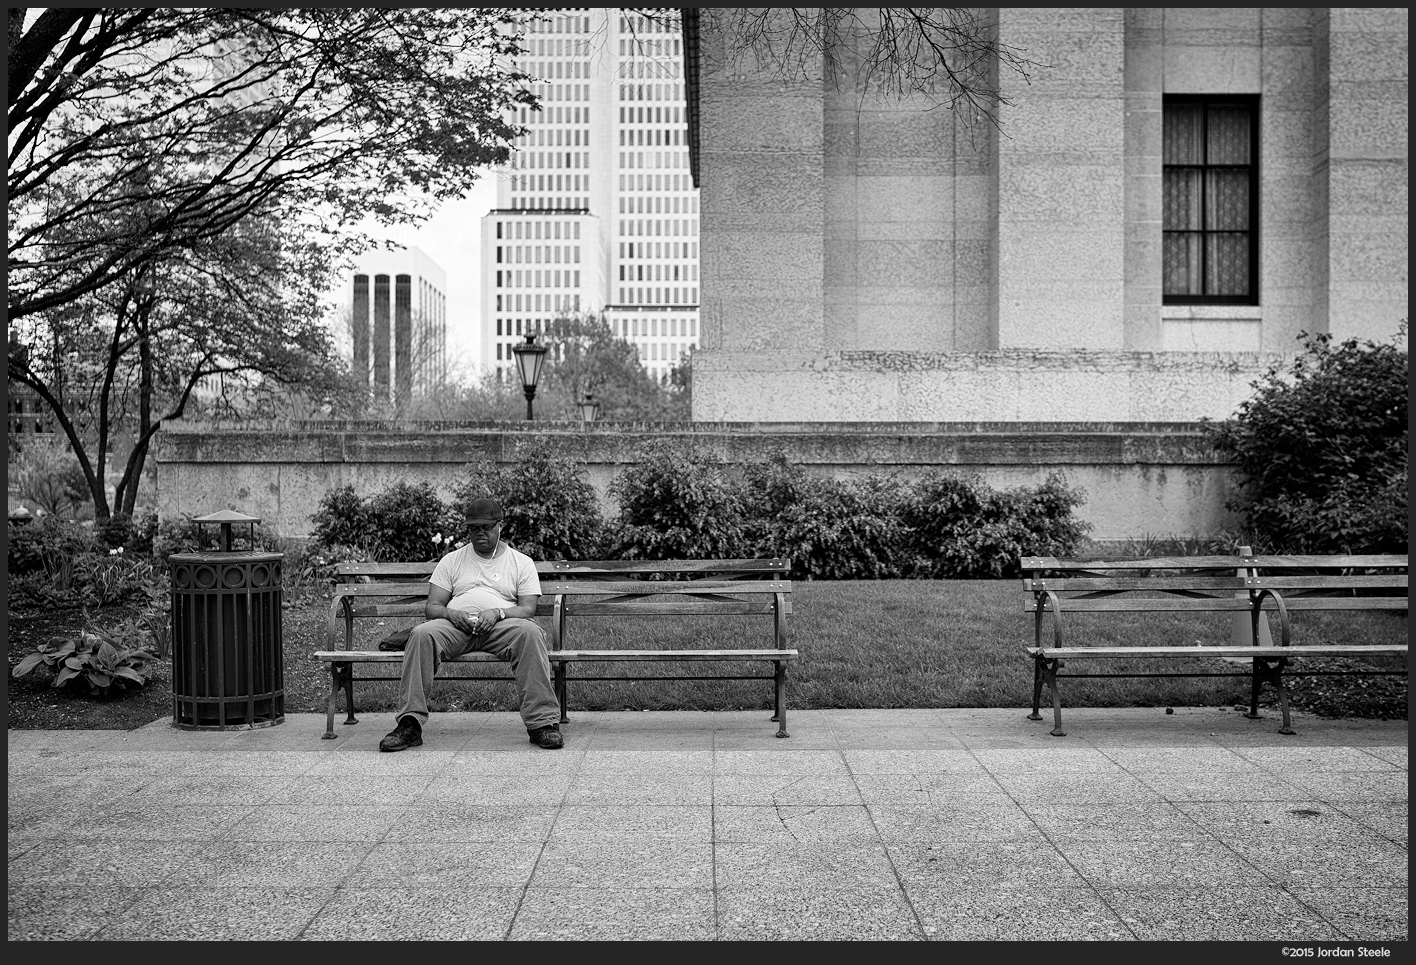 Man on Bench - Sony A7 II with Zeiss FE 35mm f/1.4 Distagon @ f/2.0